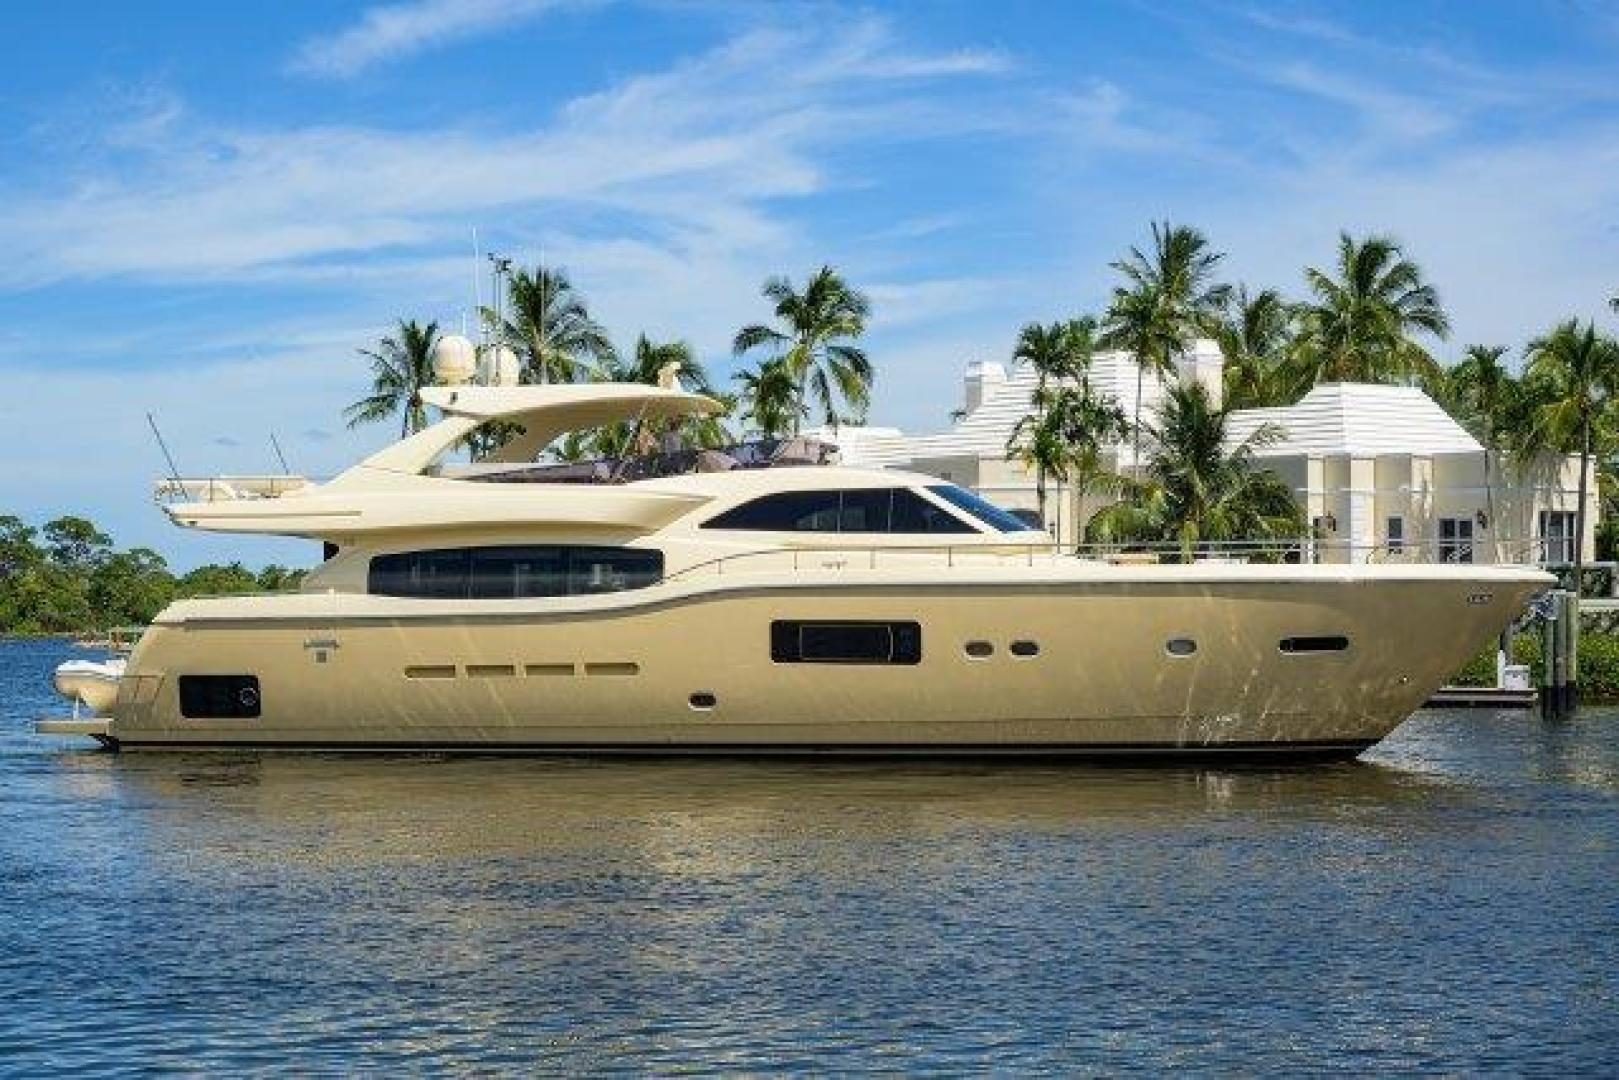 Ferretti Yachts-Altura 840 2010-MISS ALLIED Jupiter-Florida-United States-MISS ALLIED-1518298 | Thumbnail